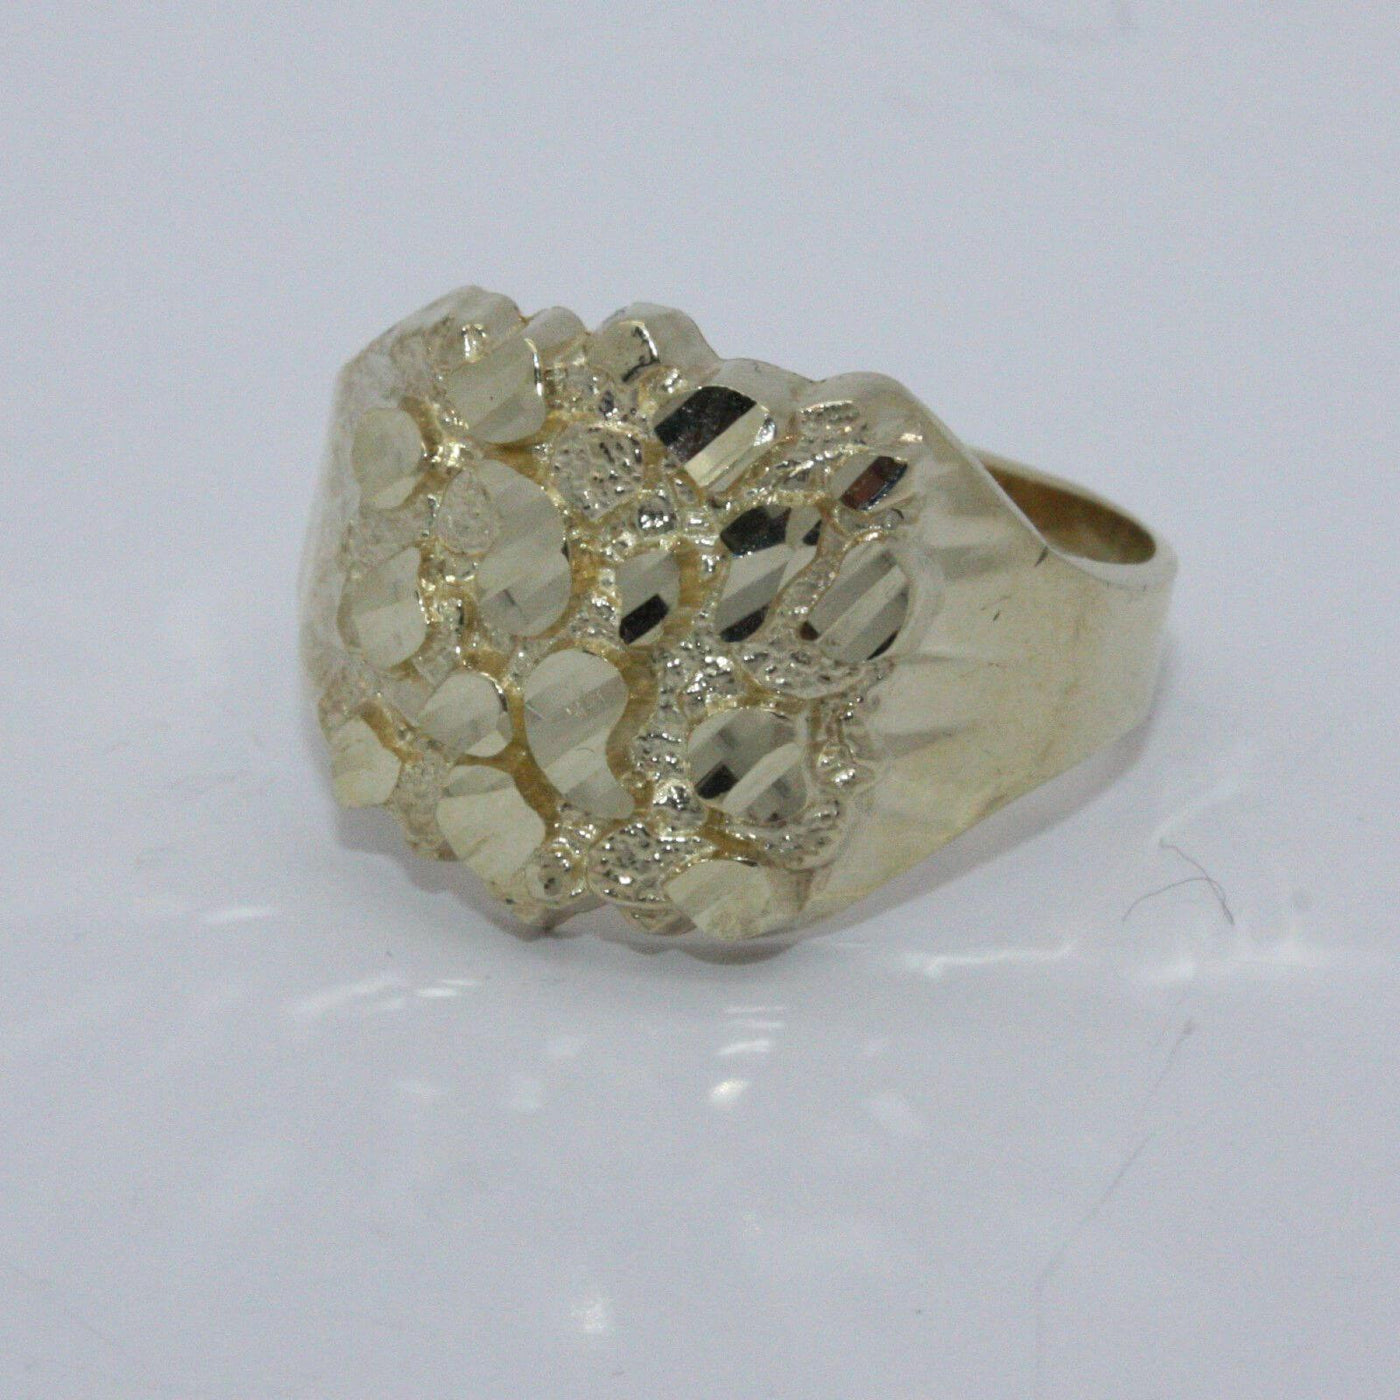 Details about  /NGR10 10K Yellow Gold Nugget Ring Boy Size #6 Band